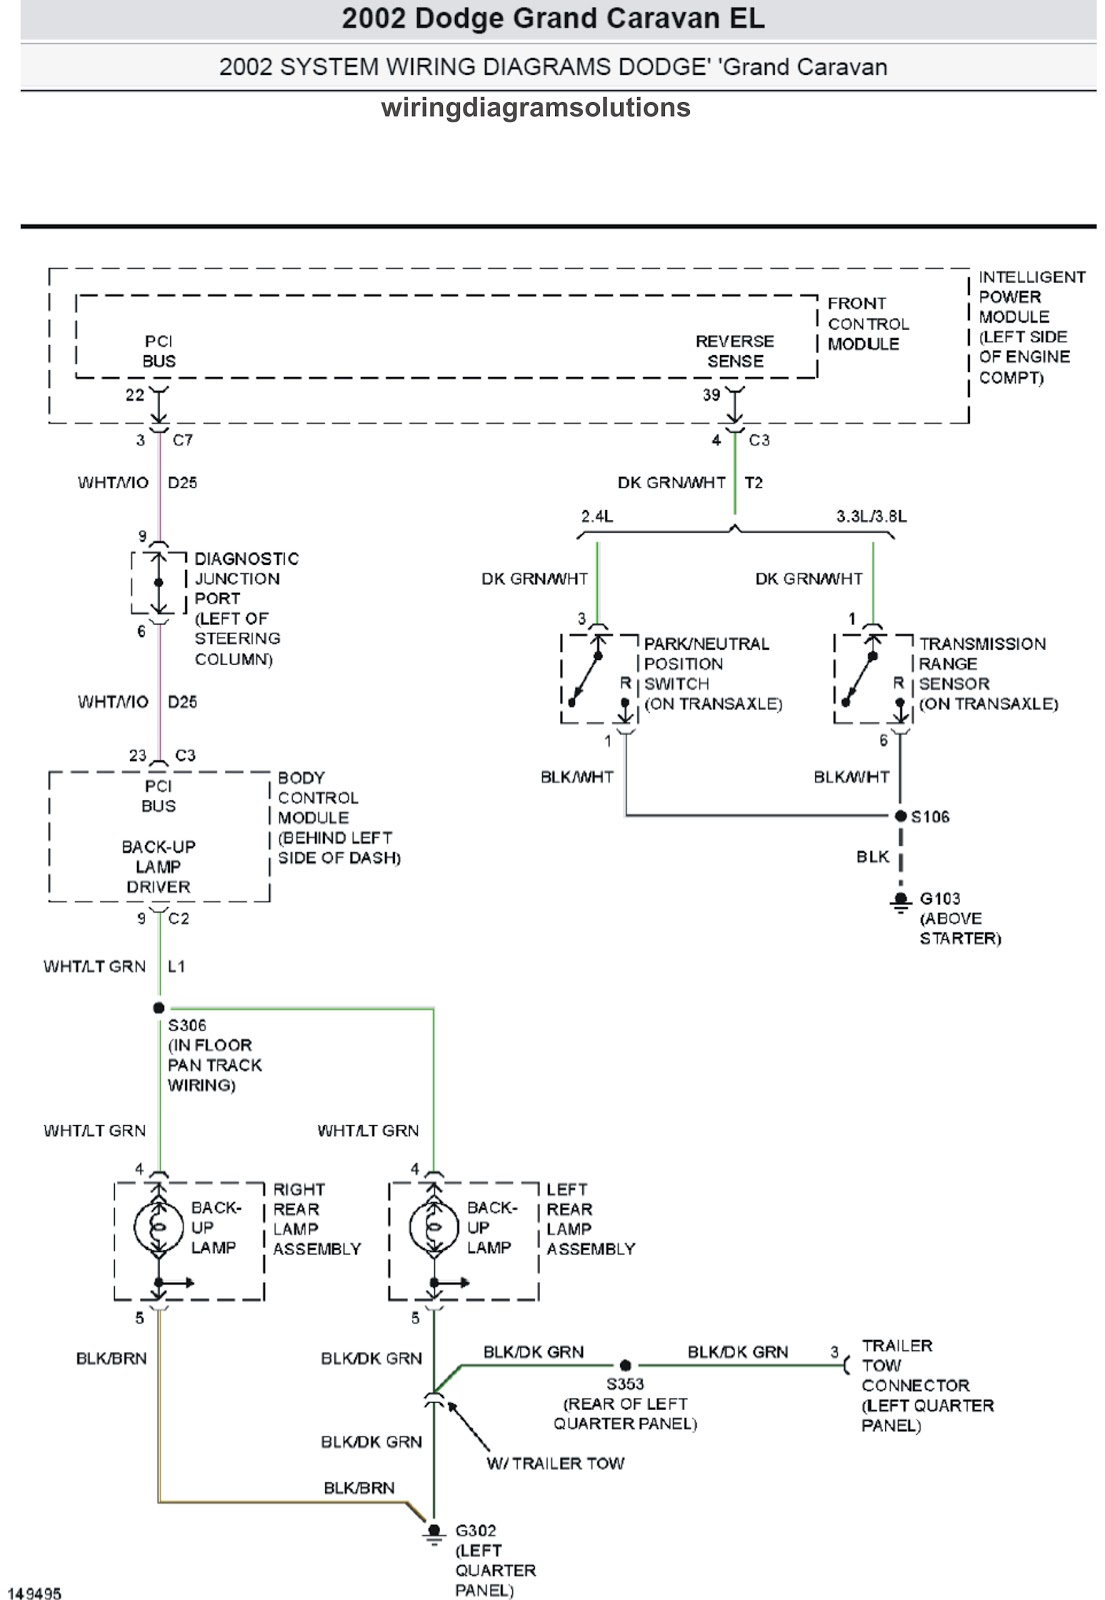 May 2011 Schematic Wiring Diagrams Solutions 2005 Dodge Grand Caravan Center Console Diagram 2002 El System